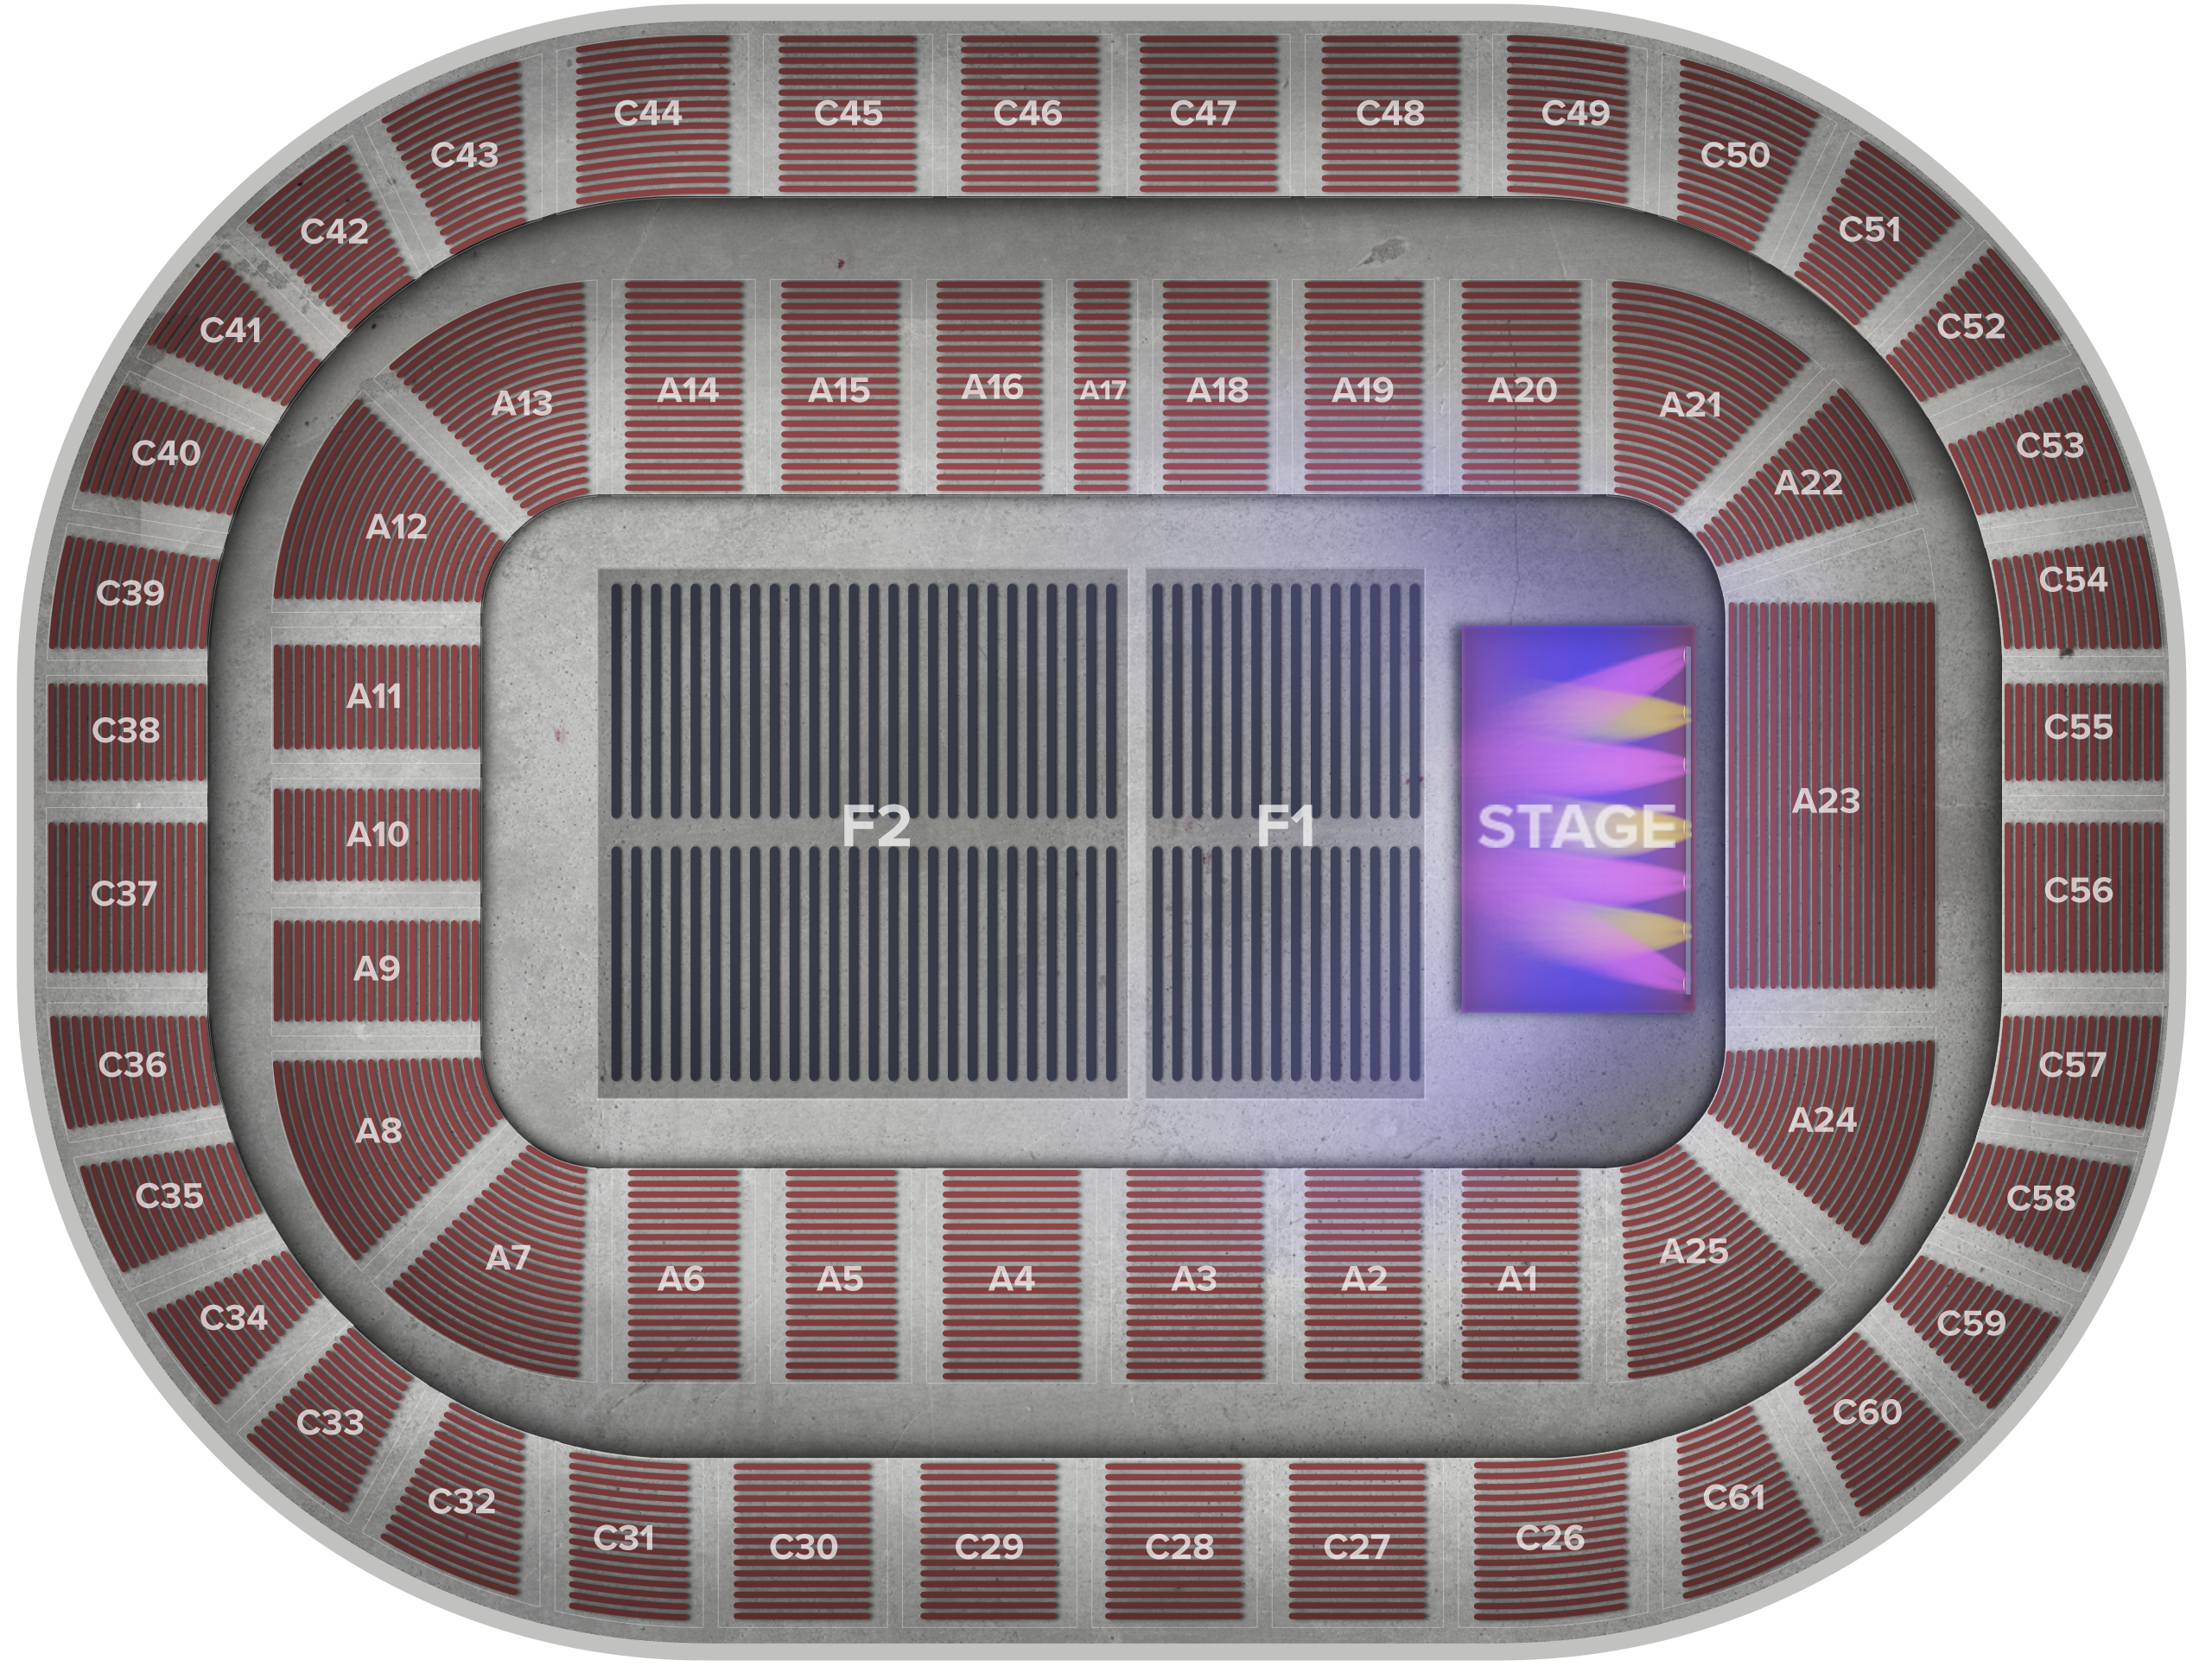 Ford Idaho Center Arena Tickets